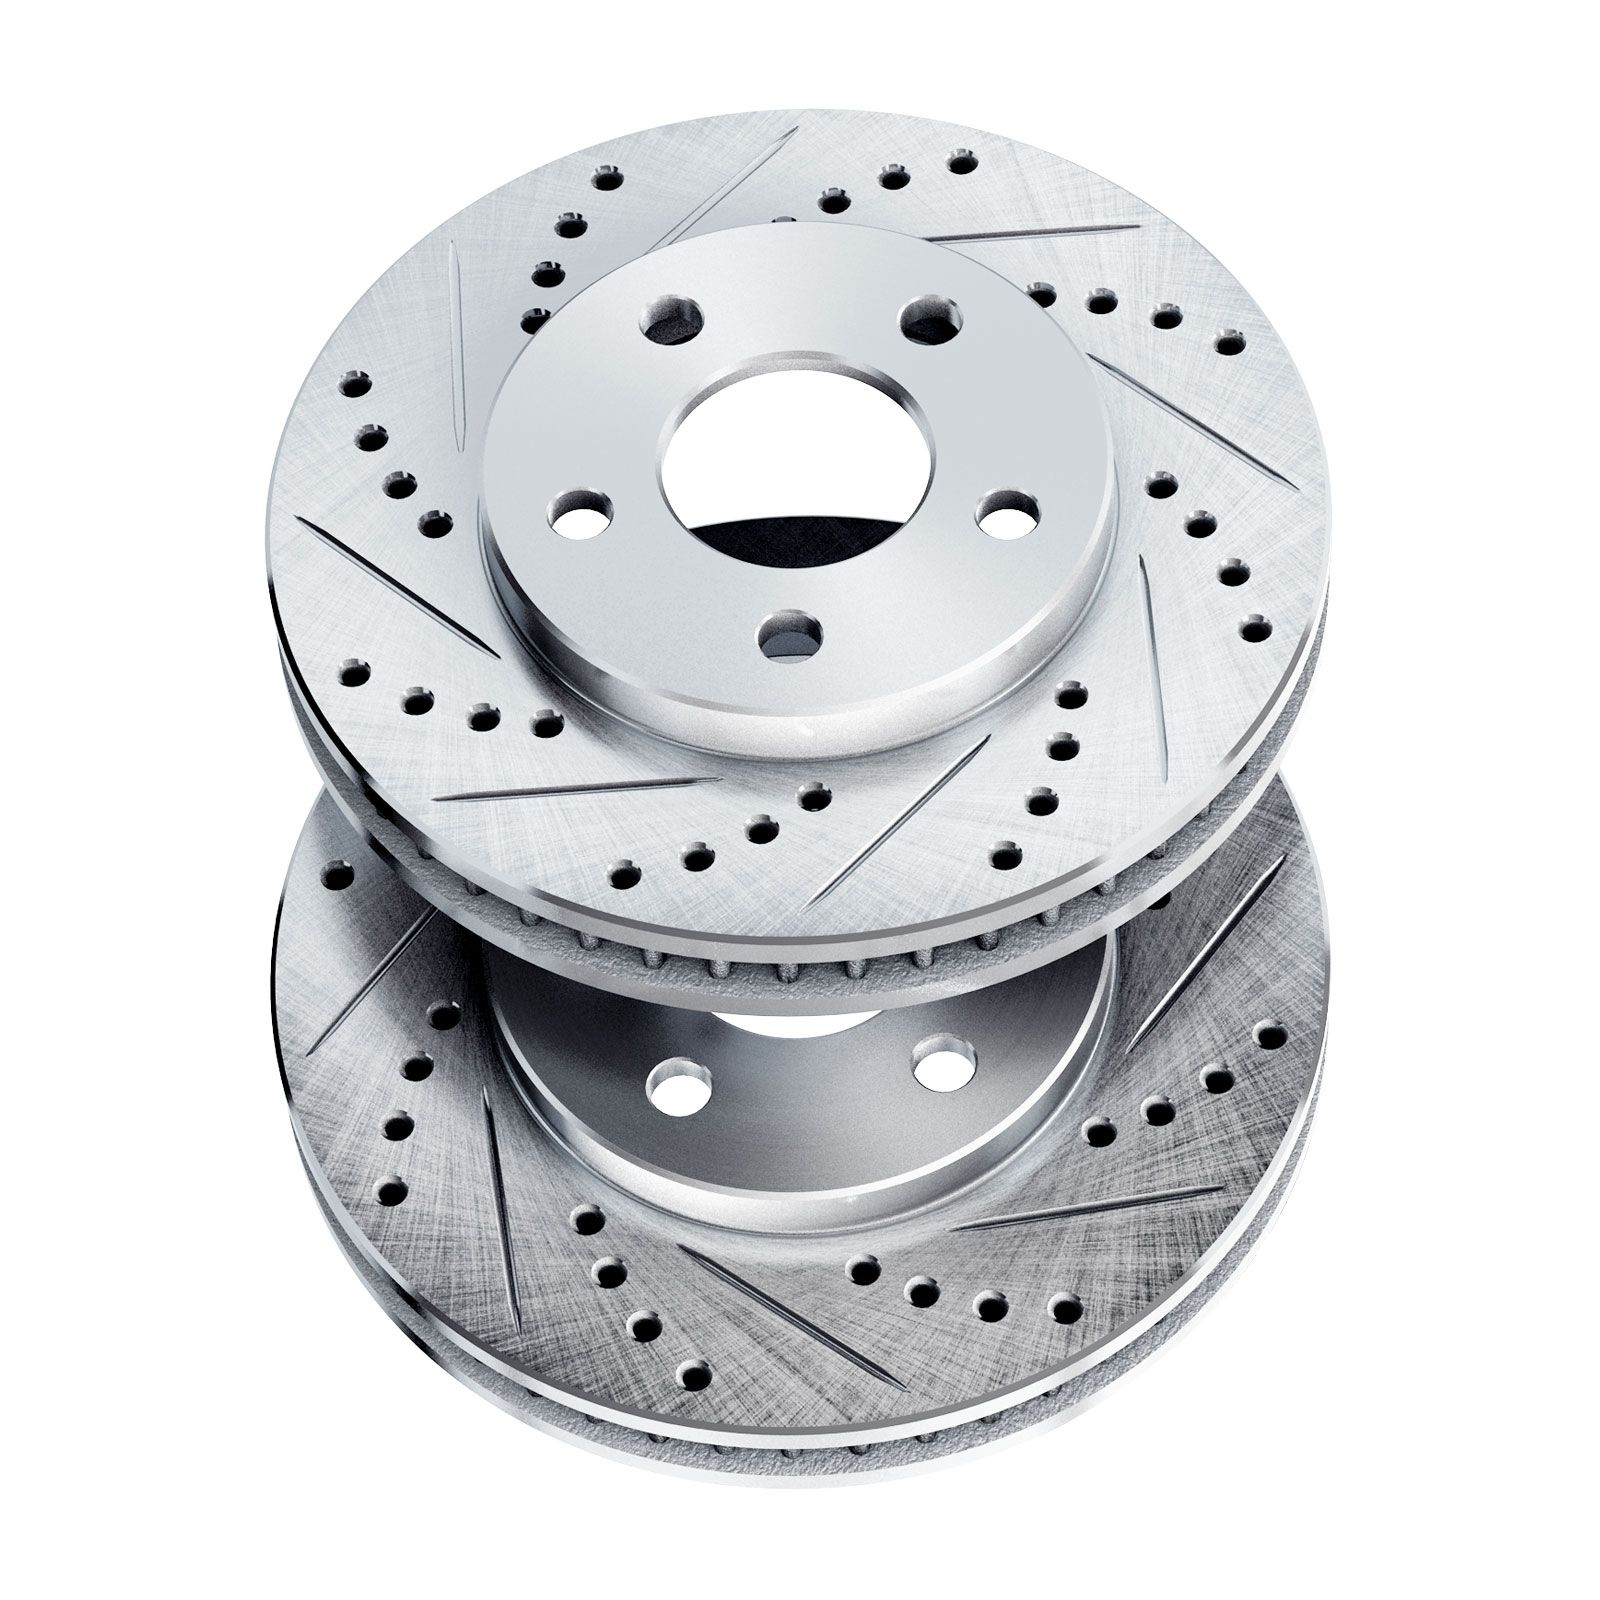 POWERSPORT *DRILLED /& SLOTTED* DISC BJ02053 2 Front Brake Rotors